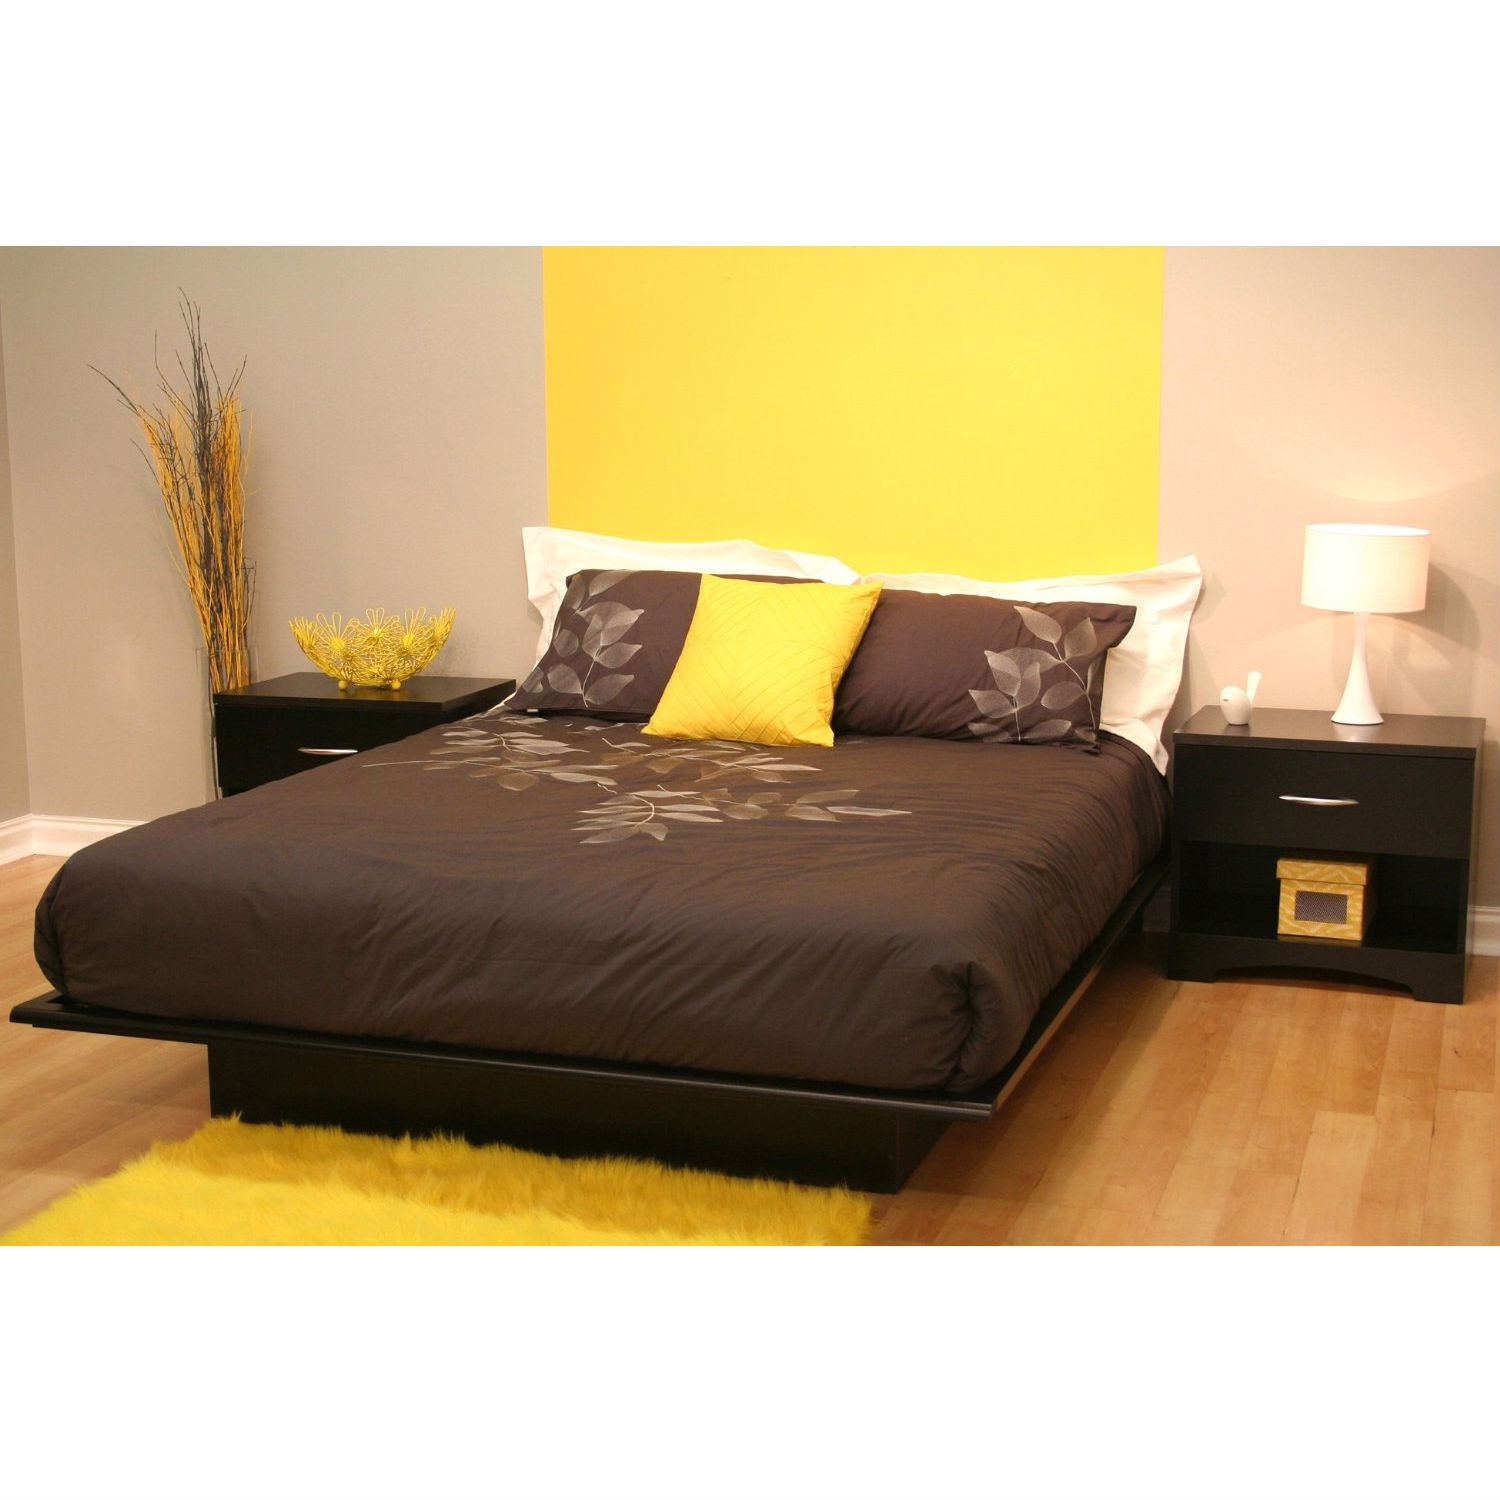 63b5a589fb Queen size Modern Platform Bed Frame in Black Wood Finish |  FastFurnishings.com